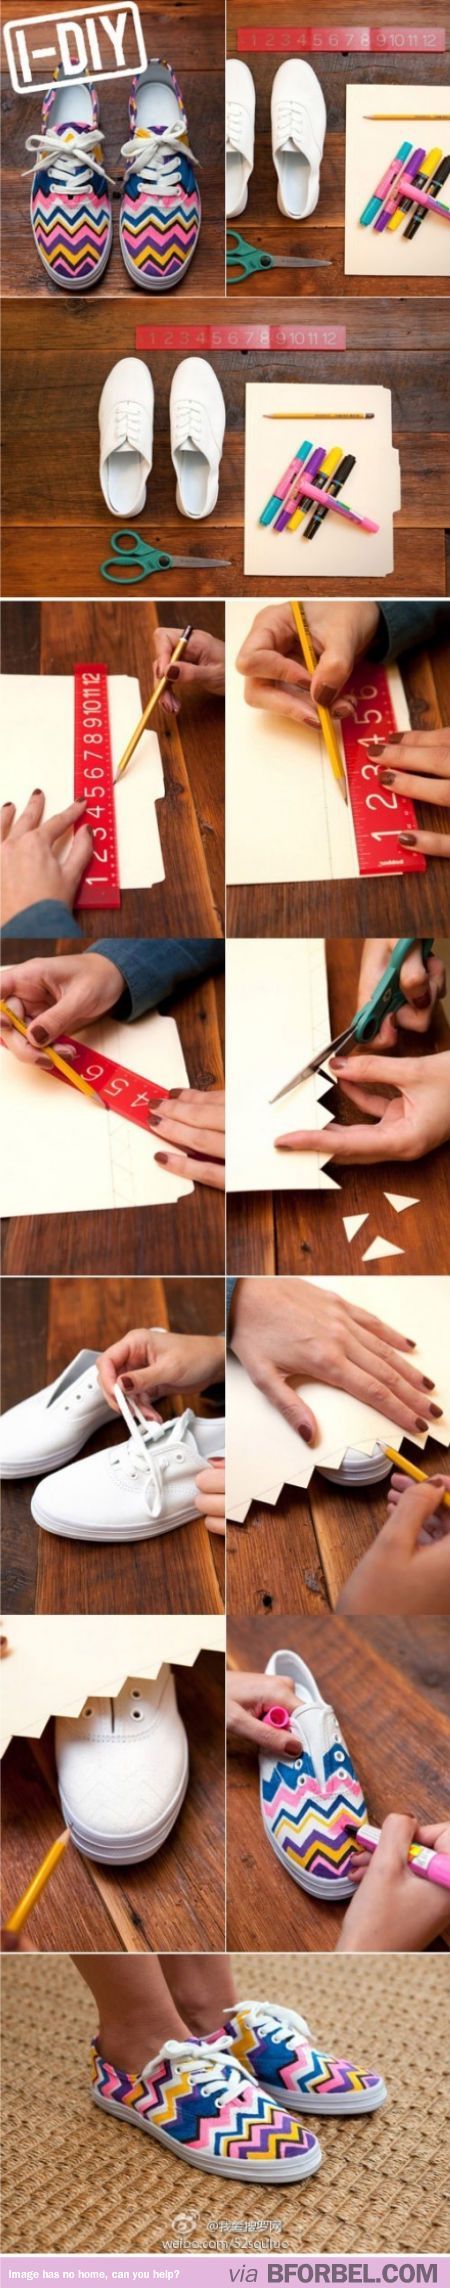 How to: DIY Sneakers Totally doing this for the kids! Summer kicks coming right